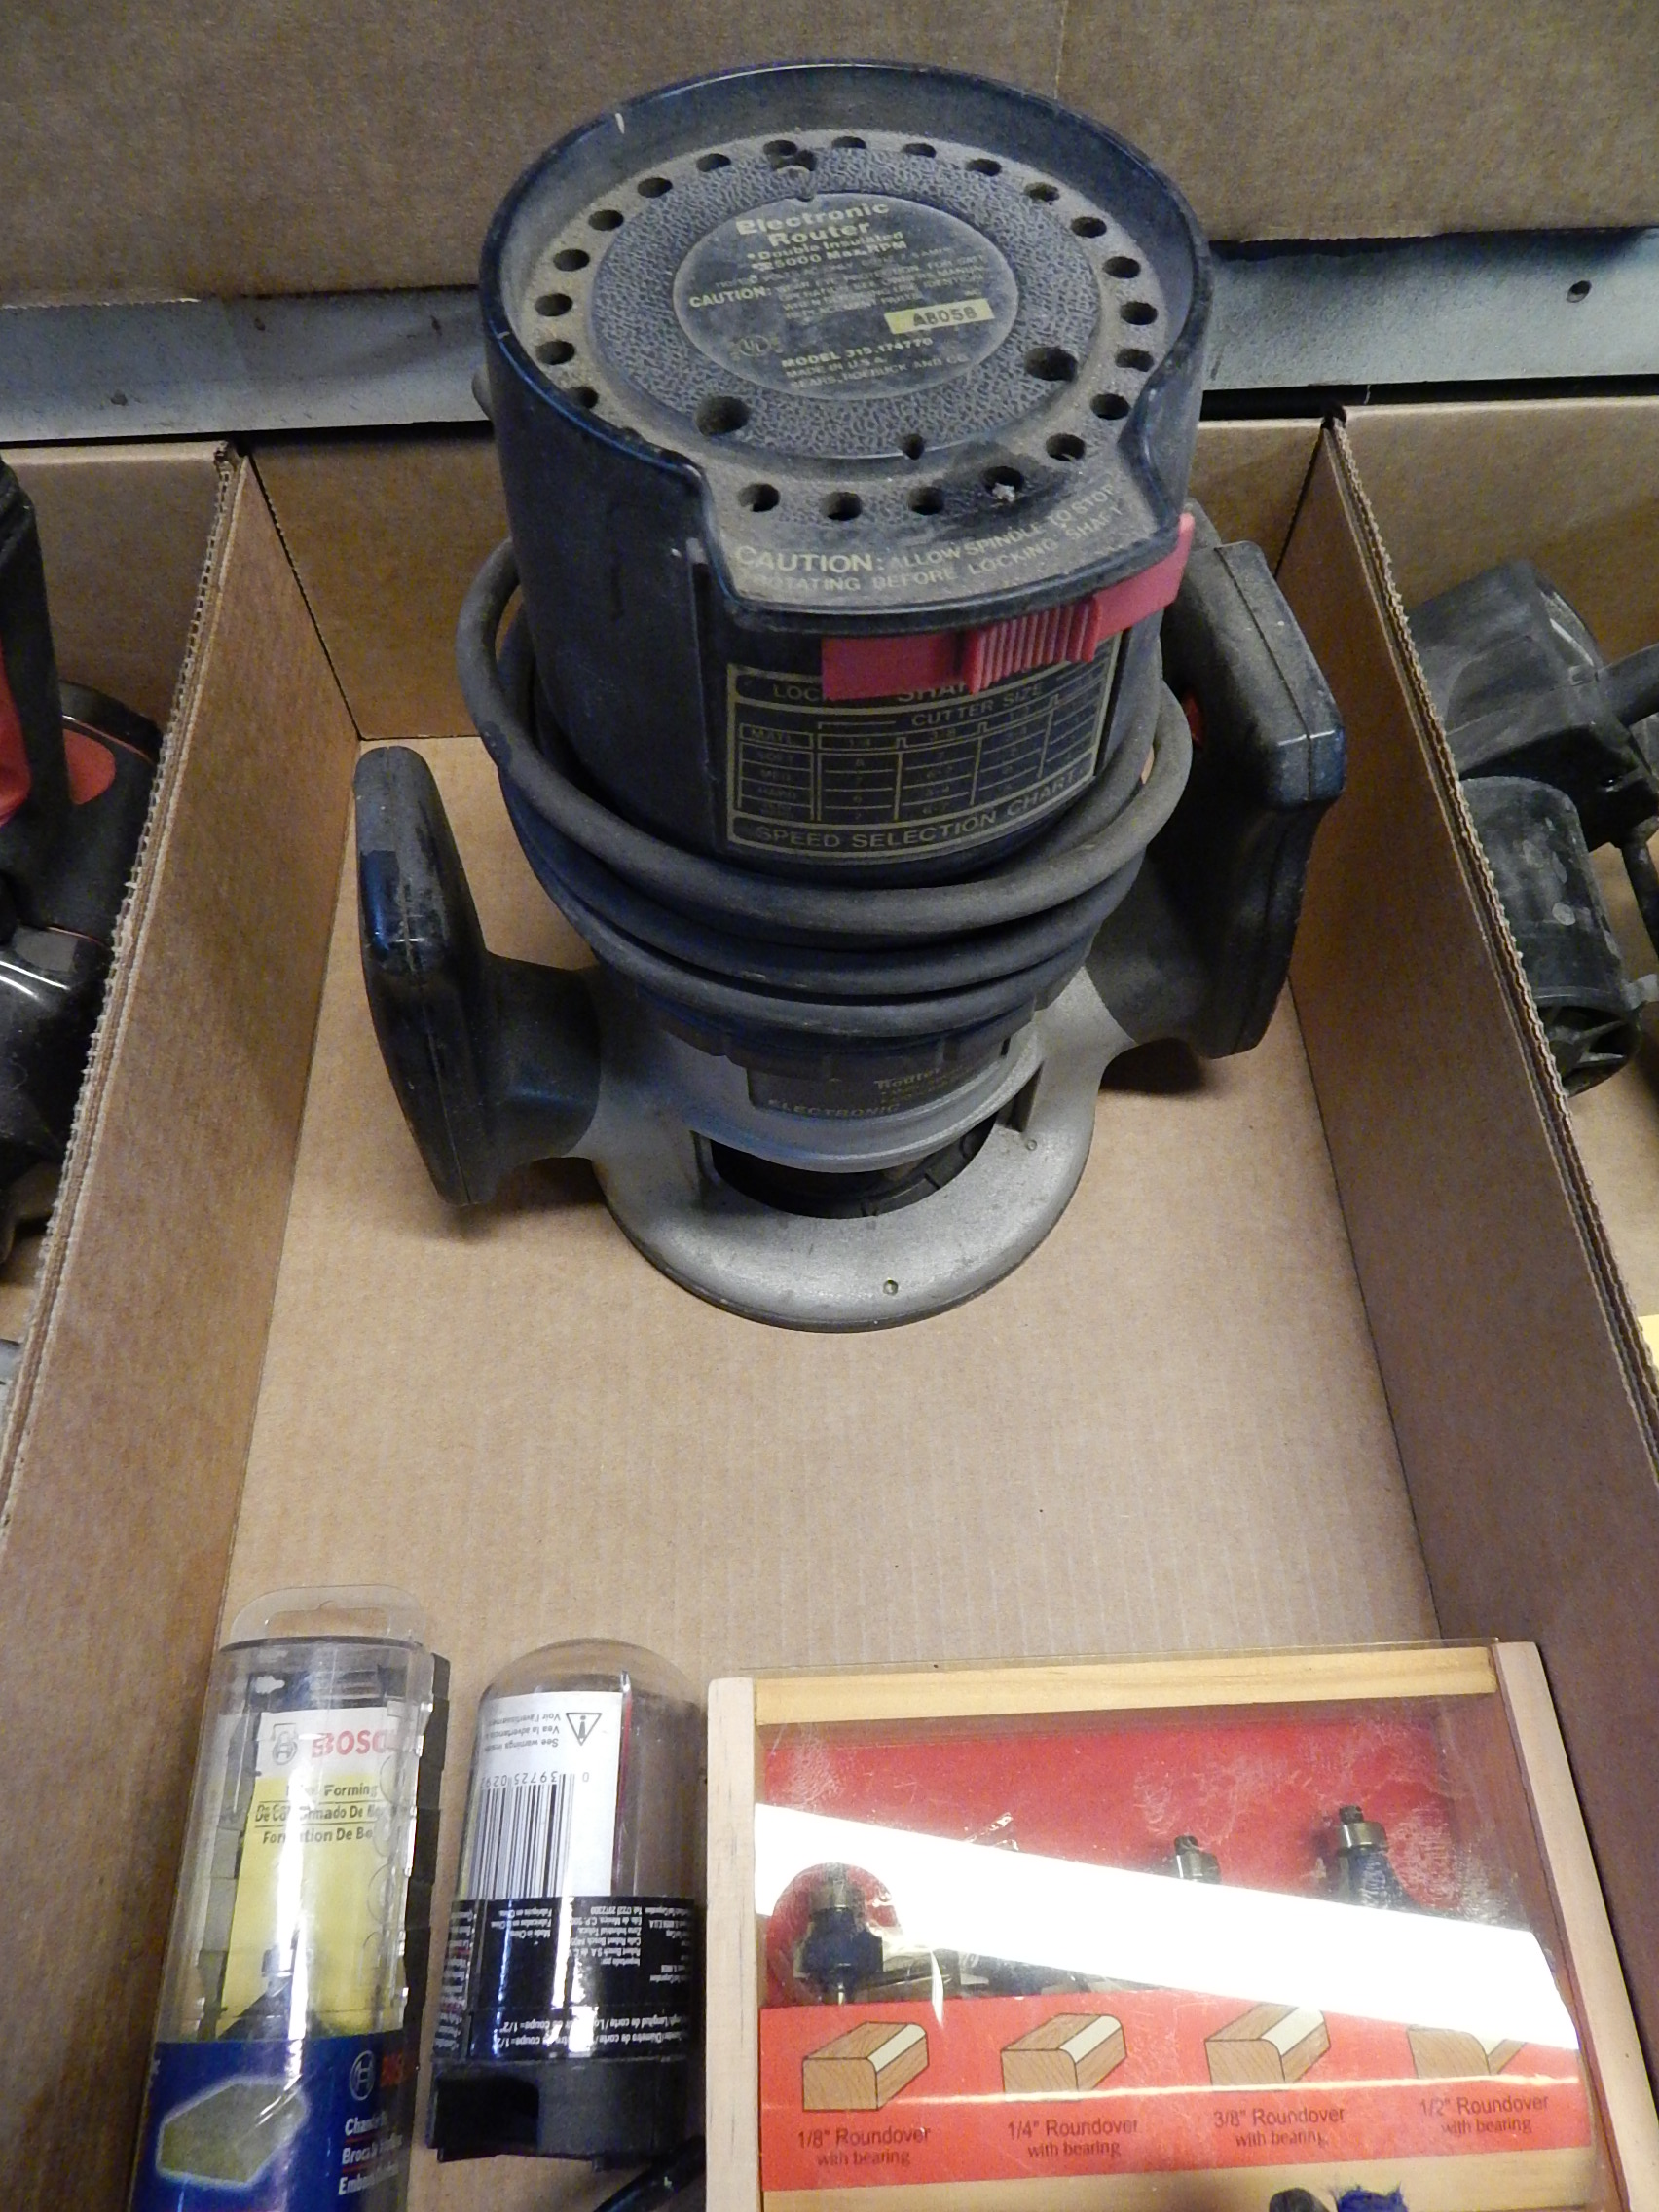 Lot 34 - Sears/Craftsman 25,000 RPM Router w/Router Bits